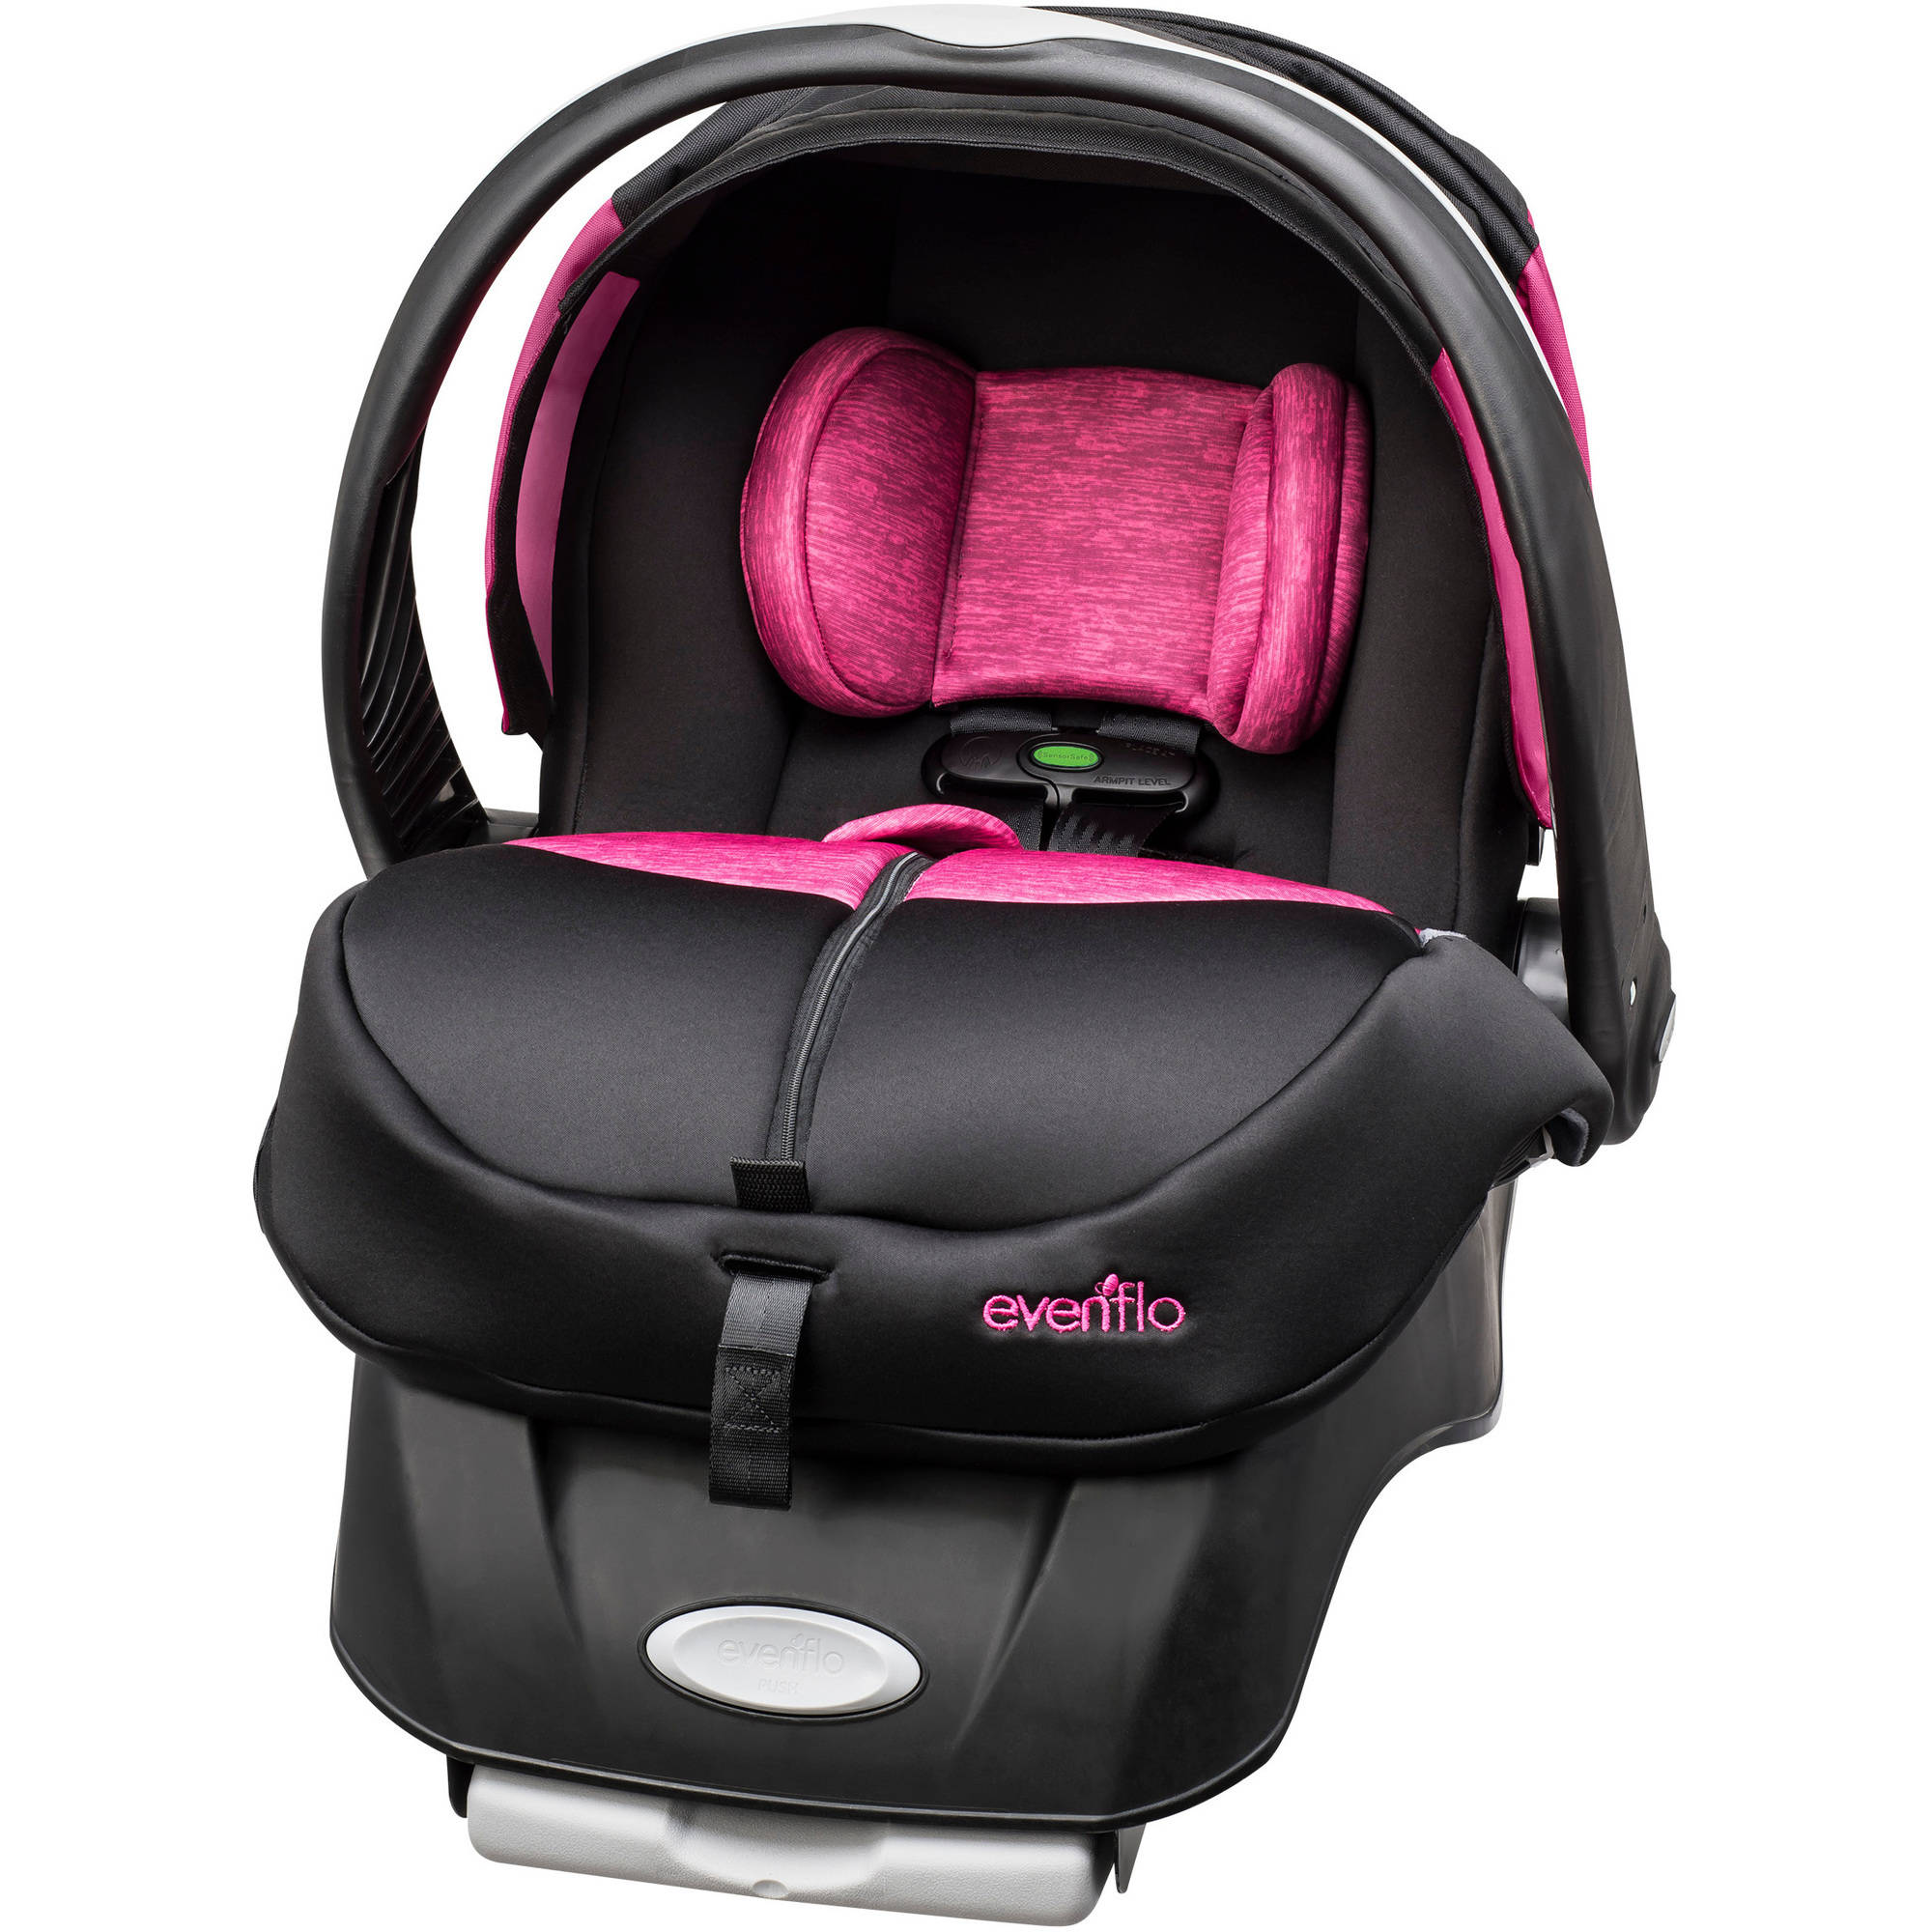 Evenflo Advanced Embrace DLX Infant Car Seat w/ SensorSafe, Choose Your Pattern